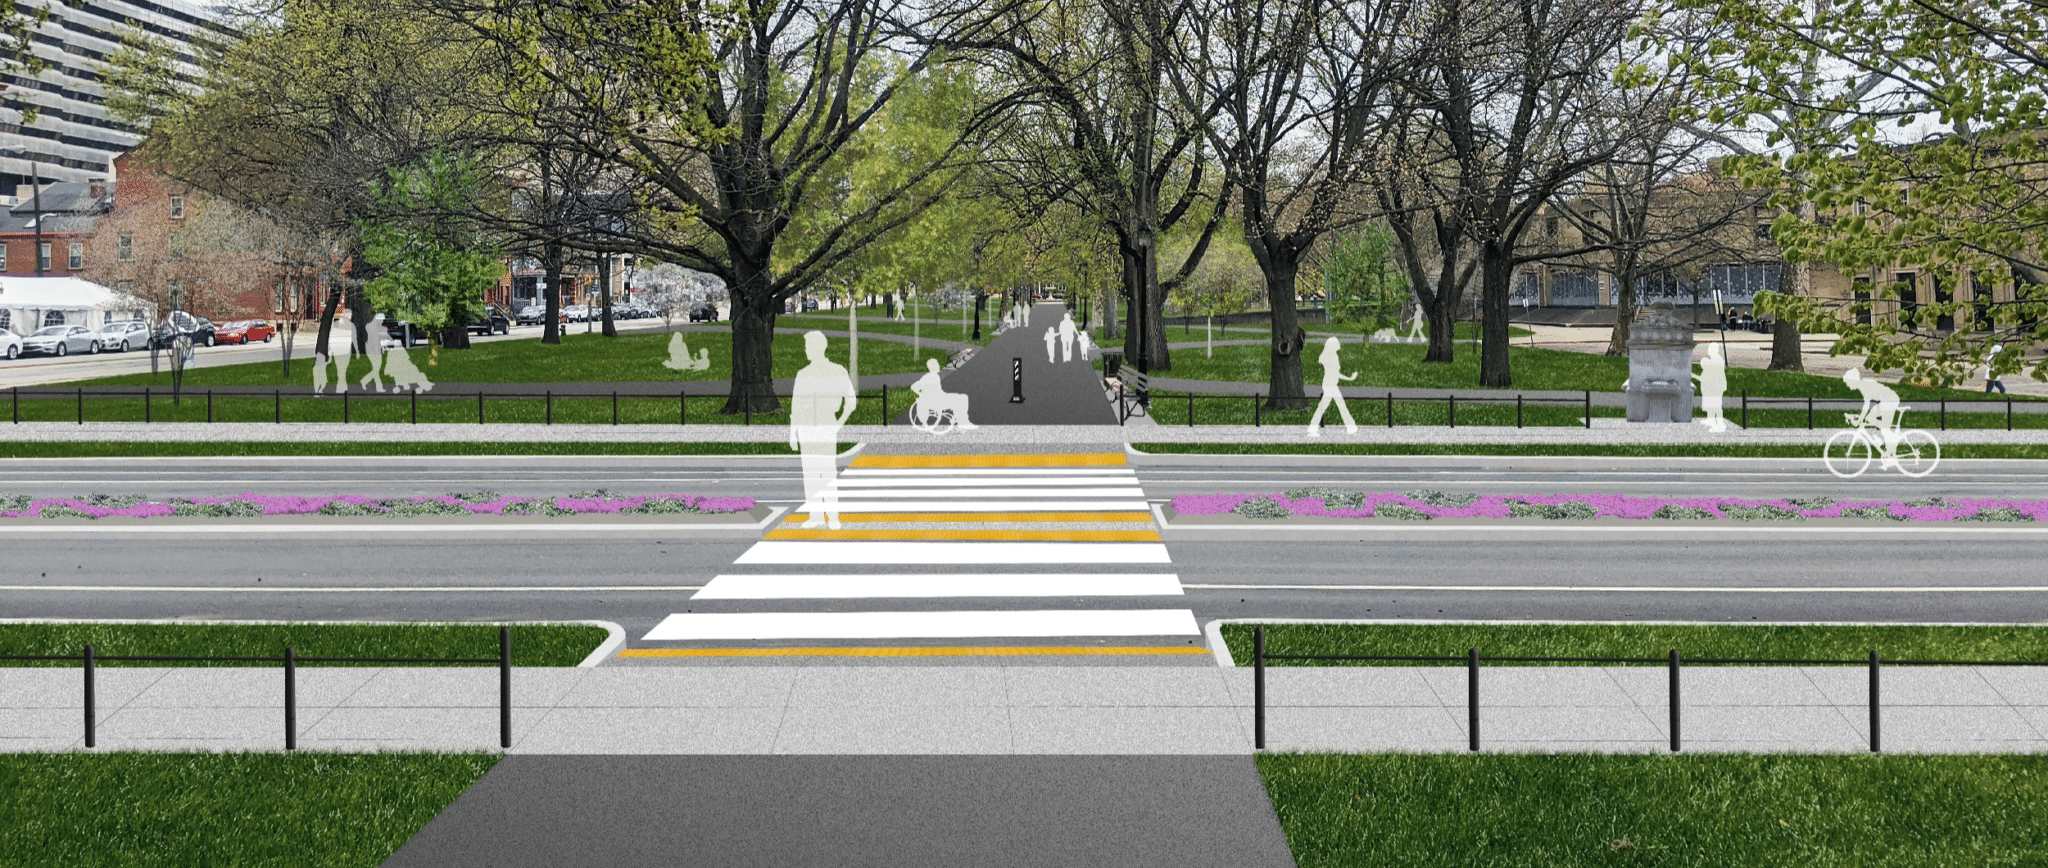 An image of the conservancy's plans for the North Promenade Project.